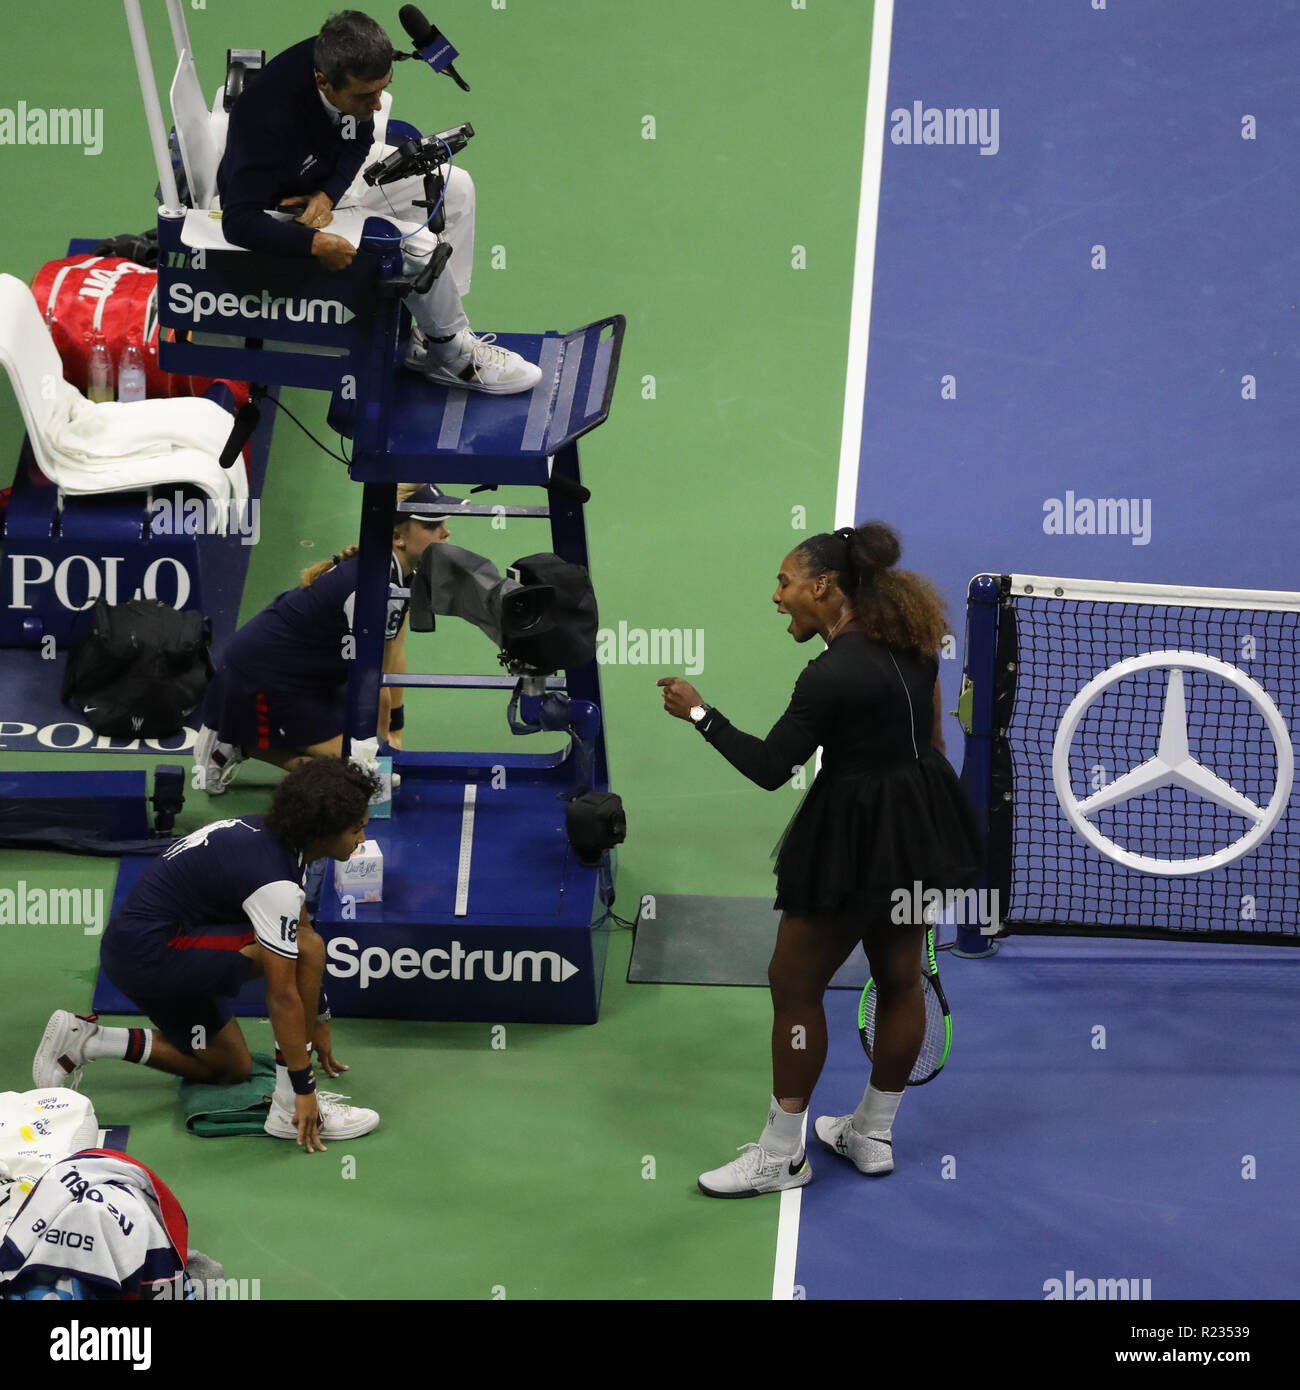 Chair Umpire High Resolution Stock Photography And Images Alamy